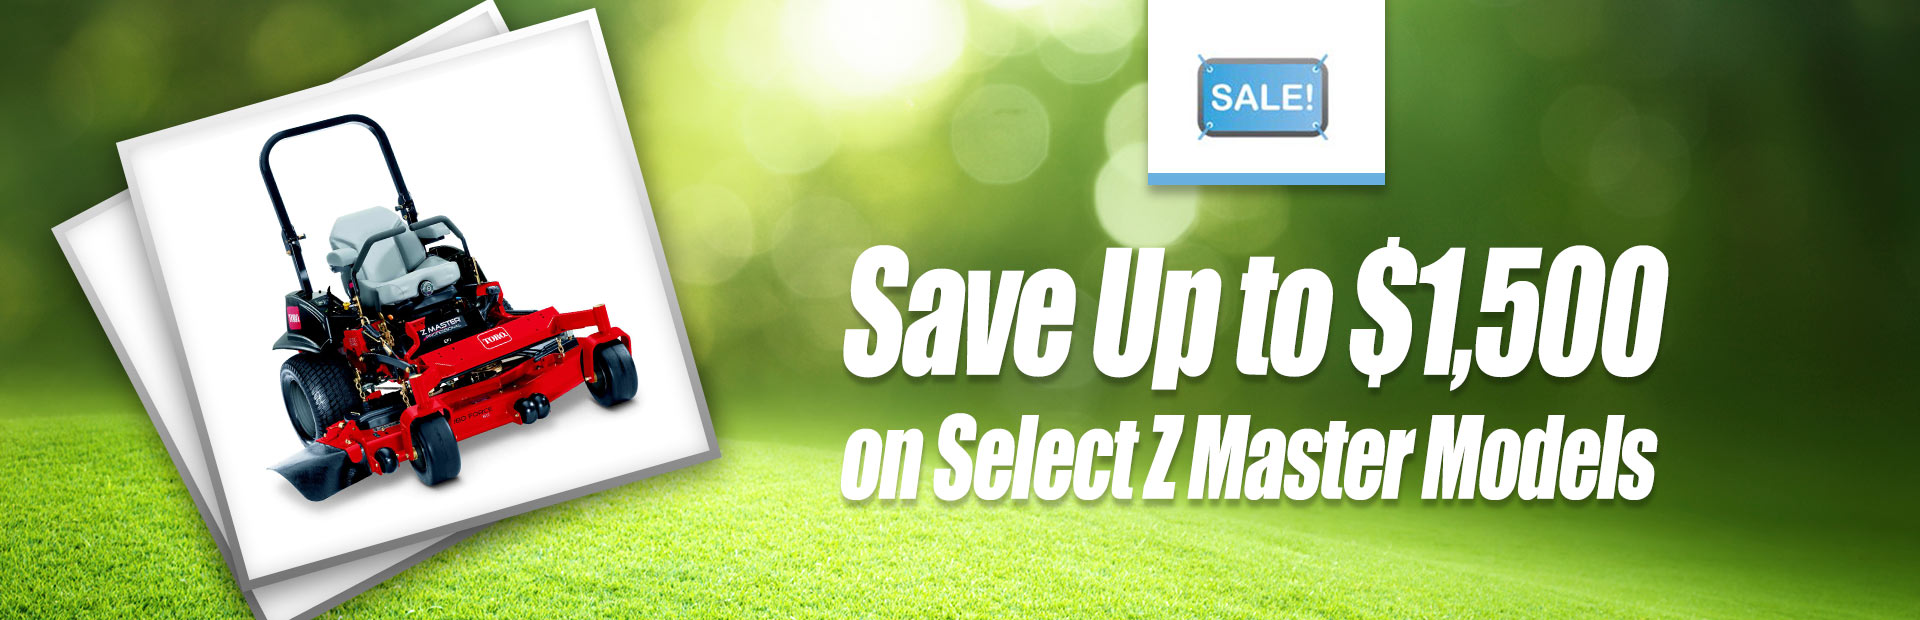 Save up to $1,500 on select Z Master models. Click here for details.